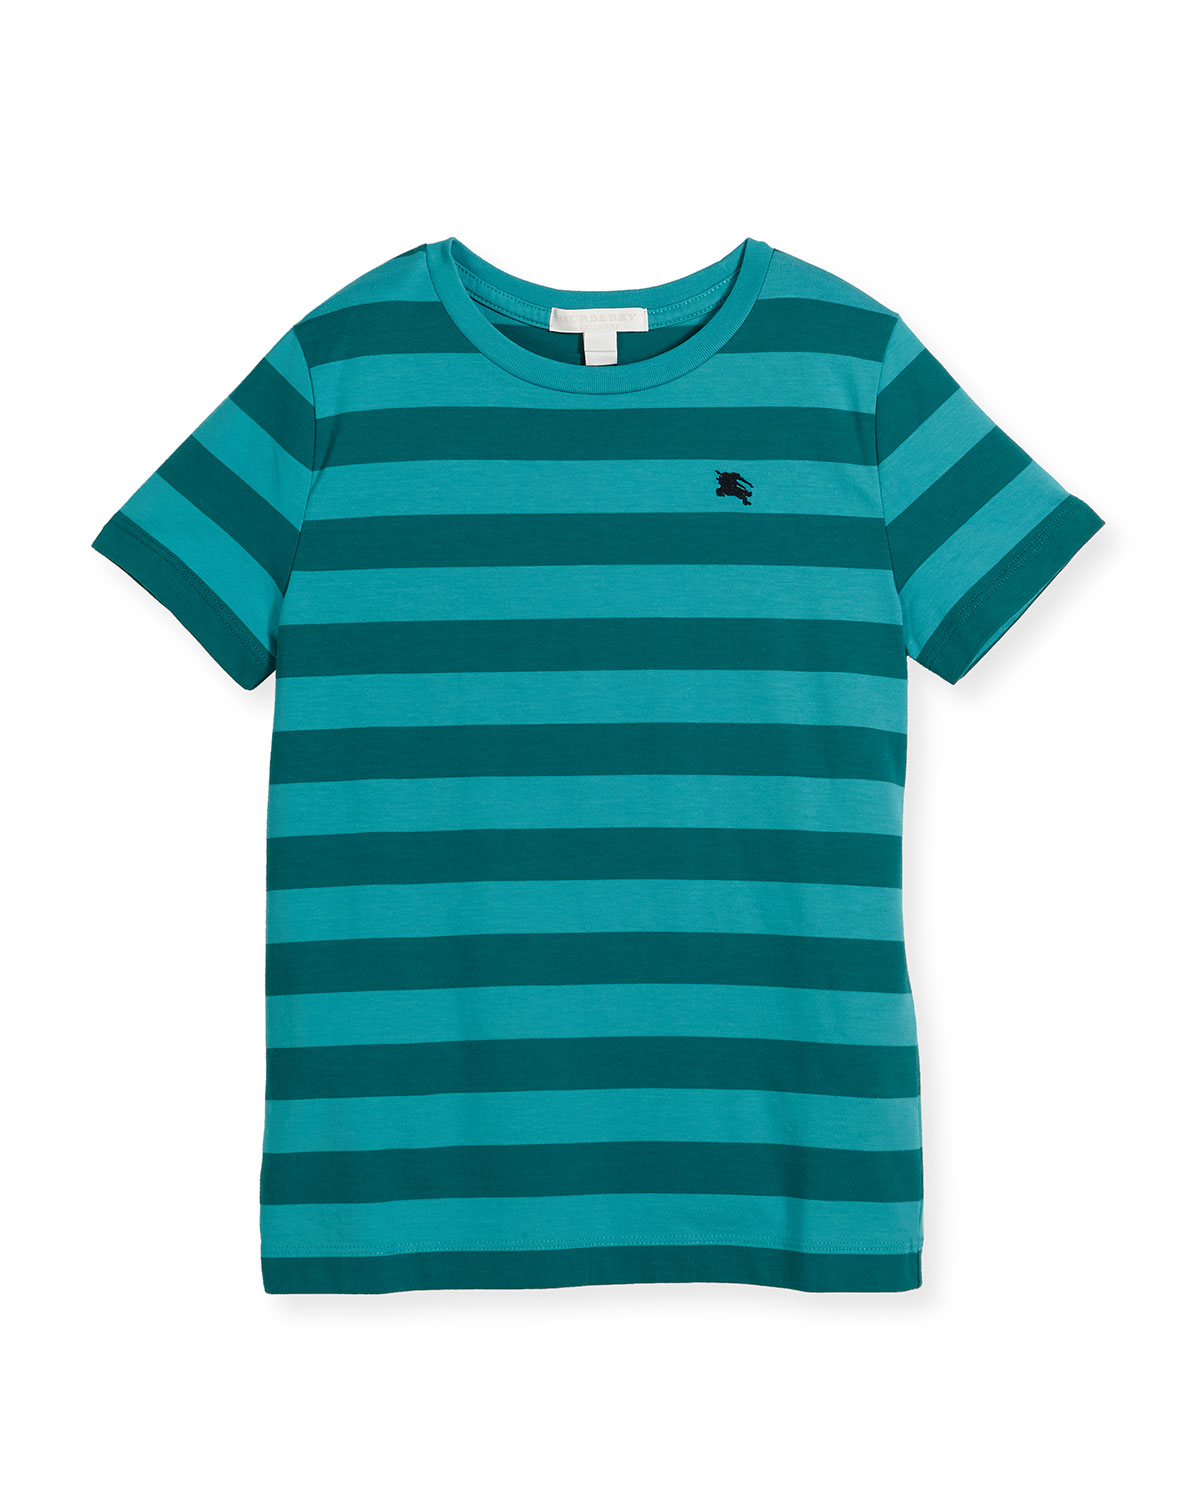 Mini Torridge Striped Jersey Tee, Teal, Size 4-14